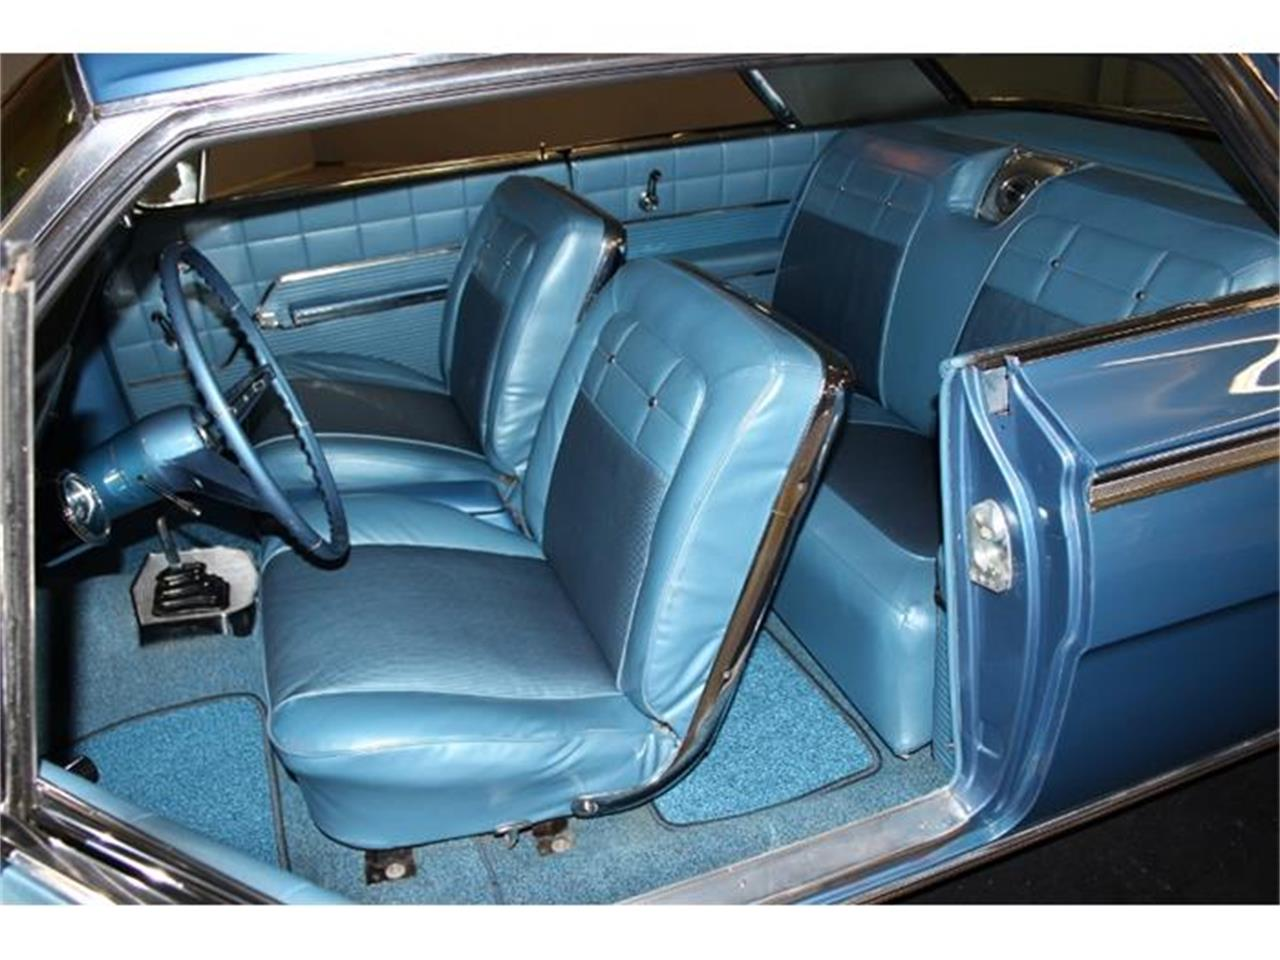 Large Picture of '62 Impala SS located in Lillington North Carolina - $55,000.00 - IT0G